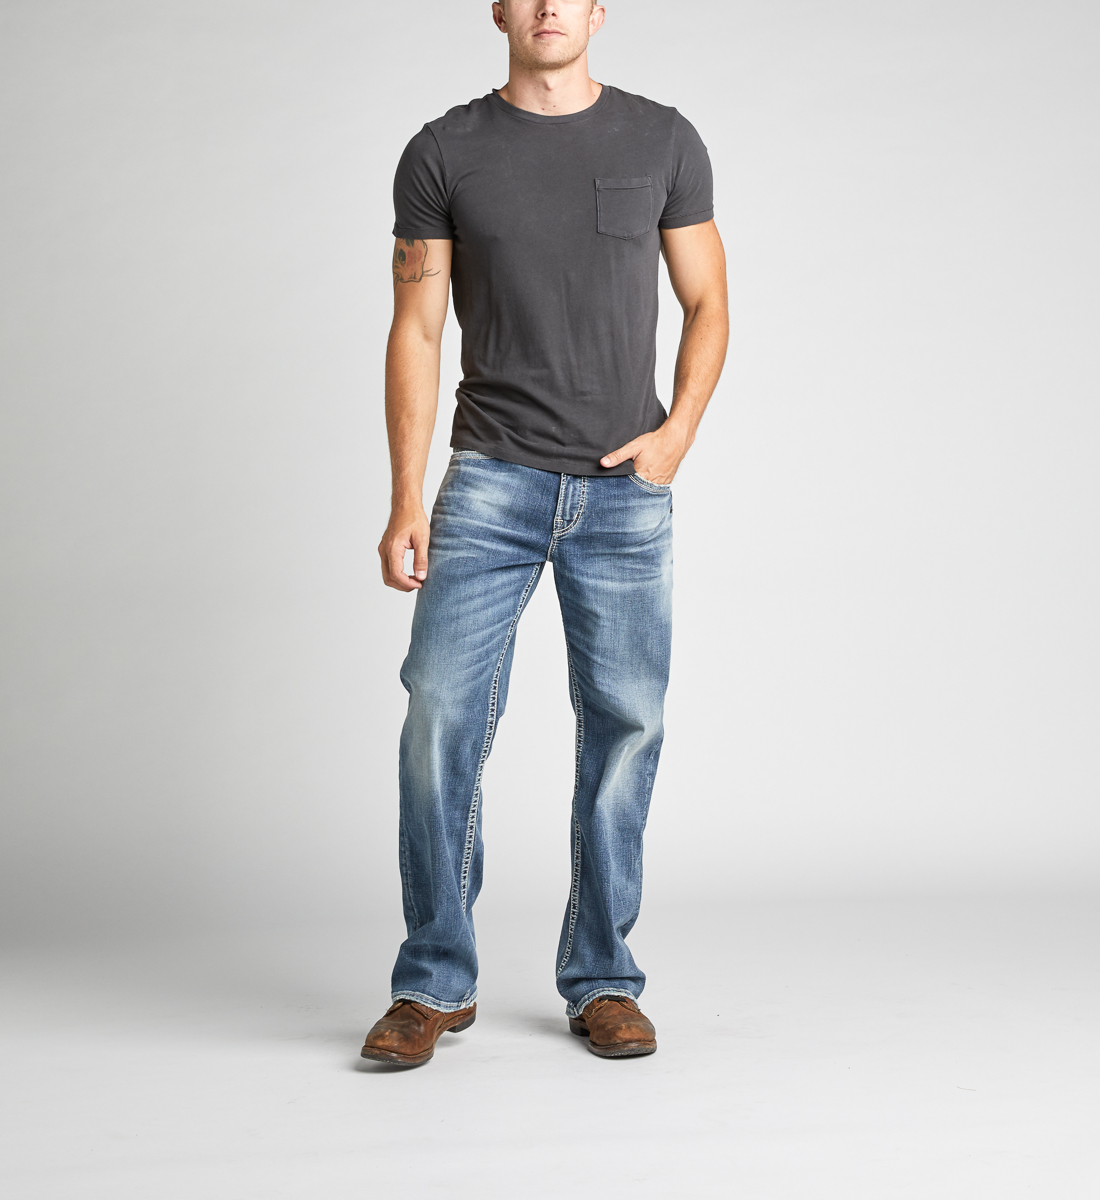 Gordie Loose Fit Straight Leg Jeans Alt Image 1